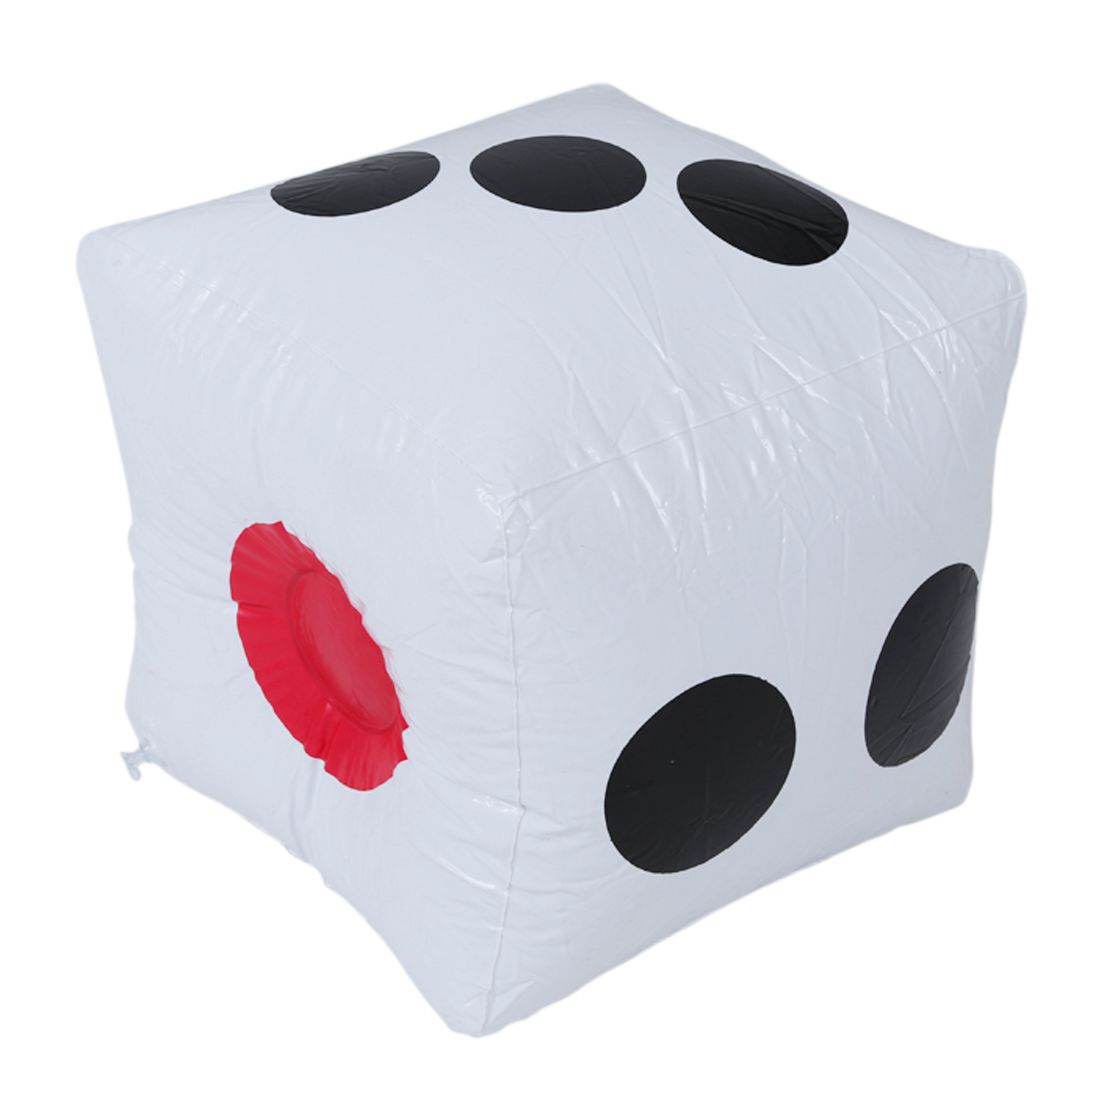 32cm Inflatable Blow Up Cube Dice Casino Poker Party Decorations Pool Beach Toy